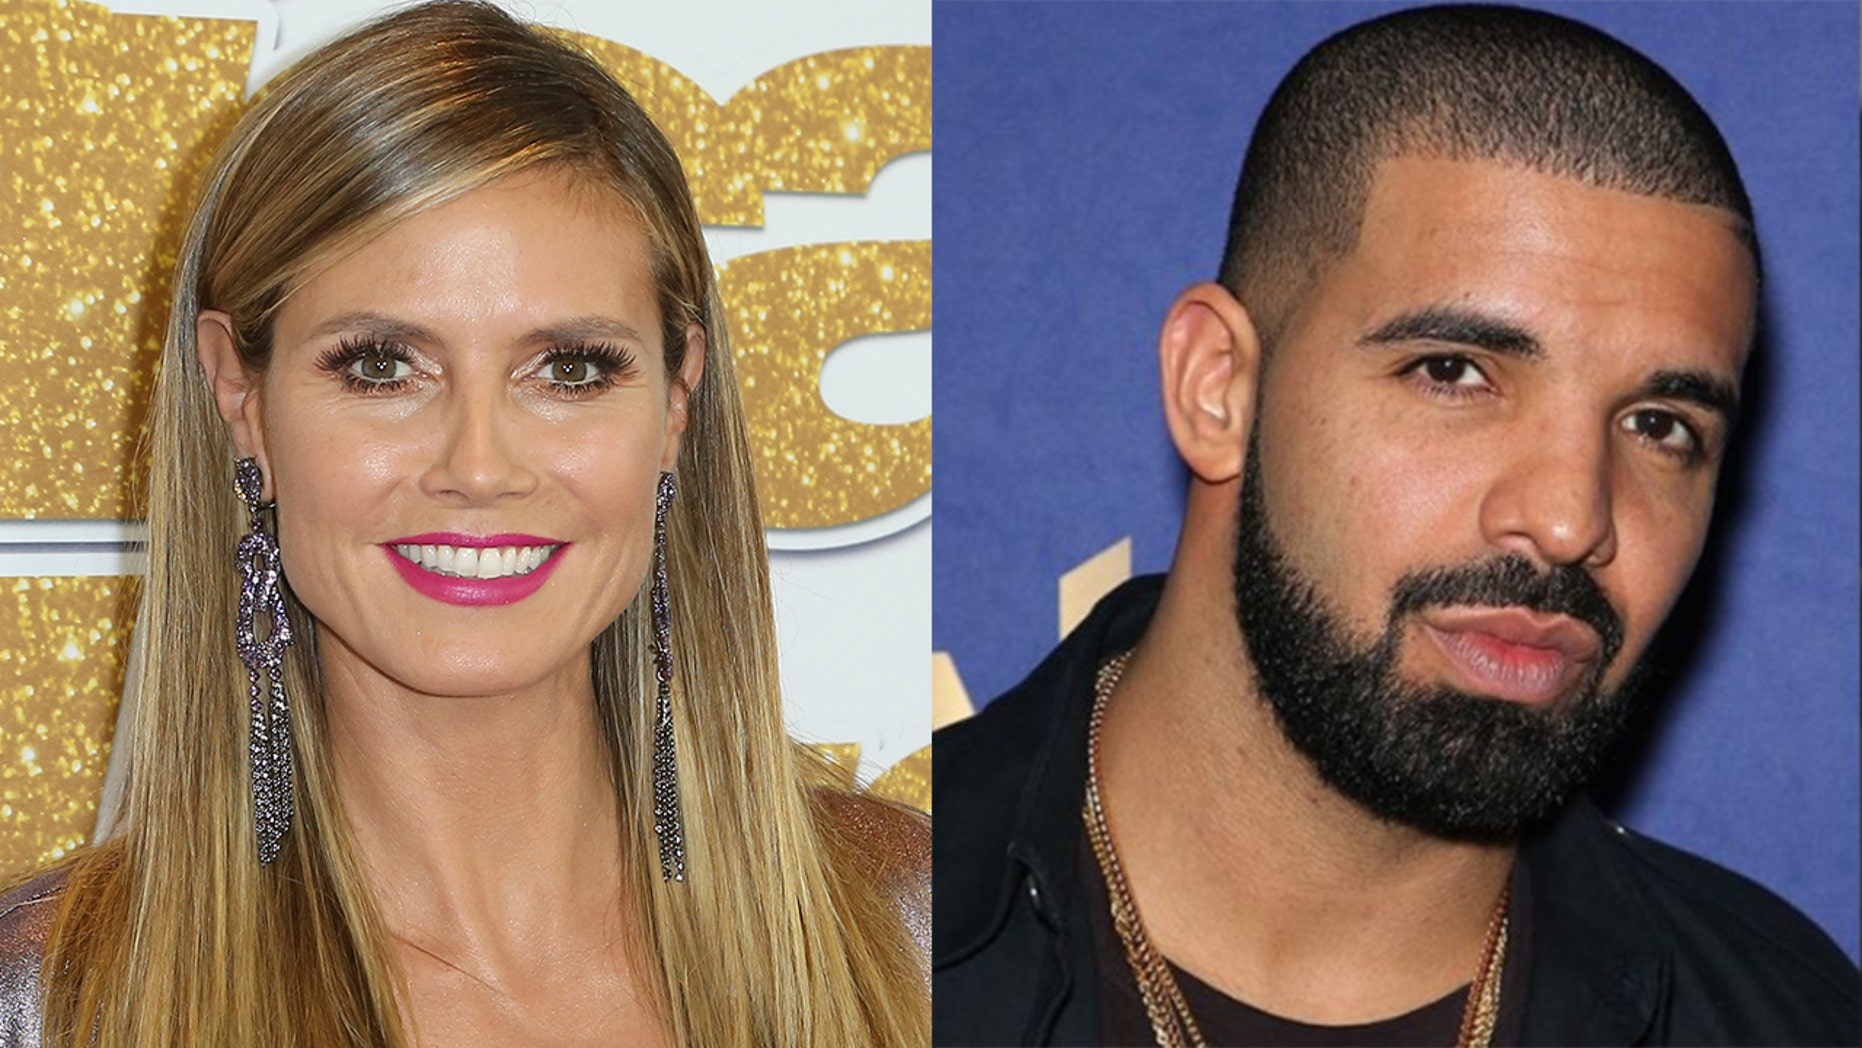 Heidi Klum revealed that she turned down Drake for a date.